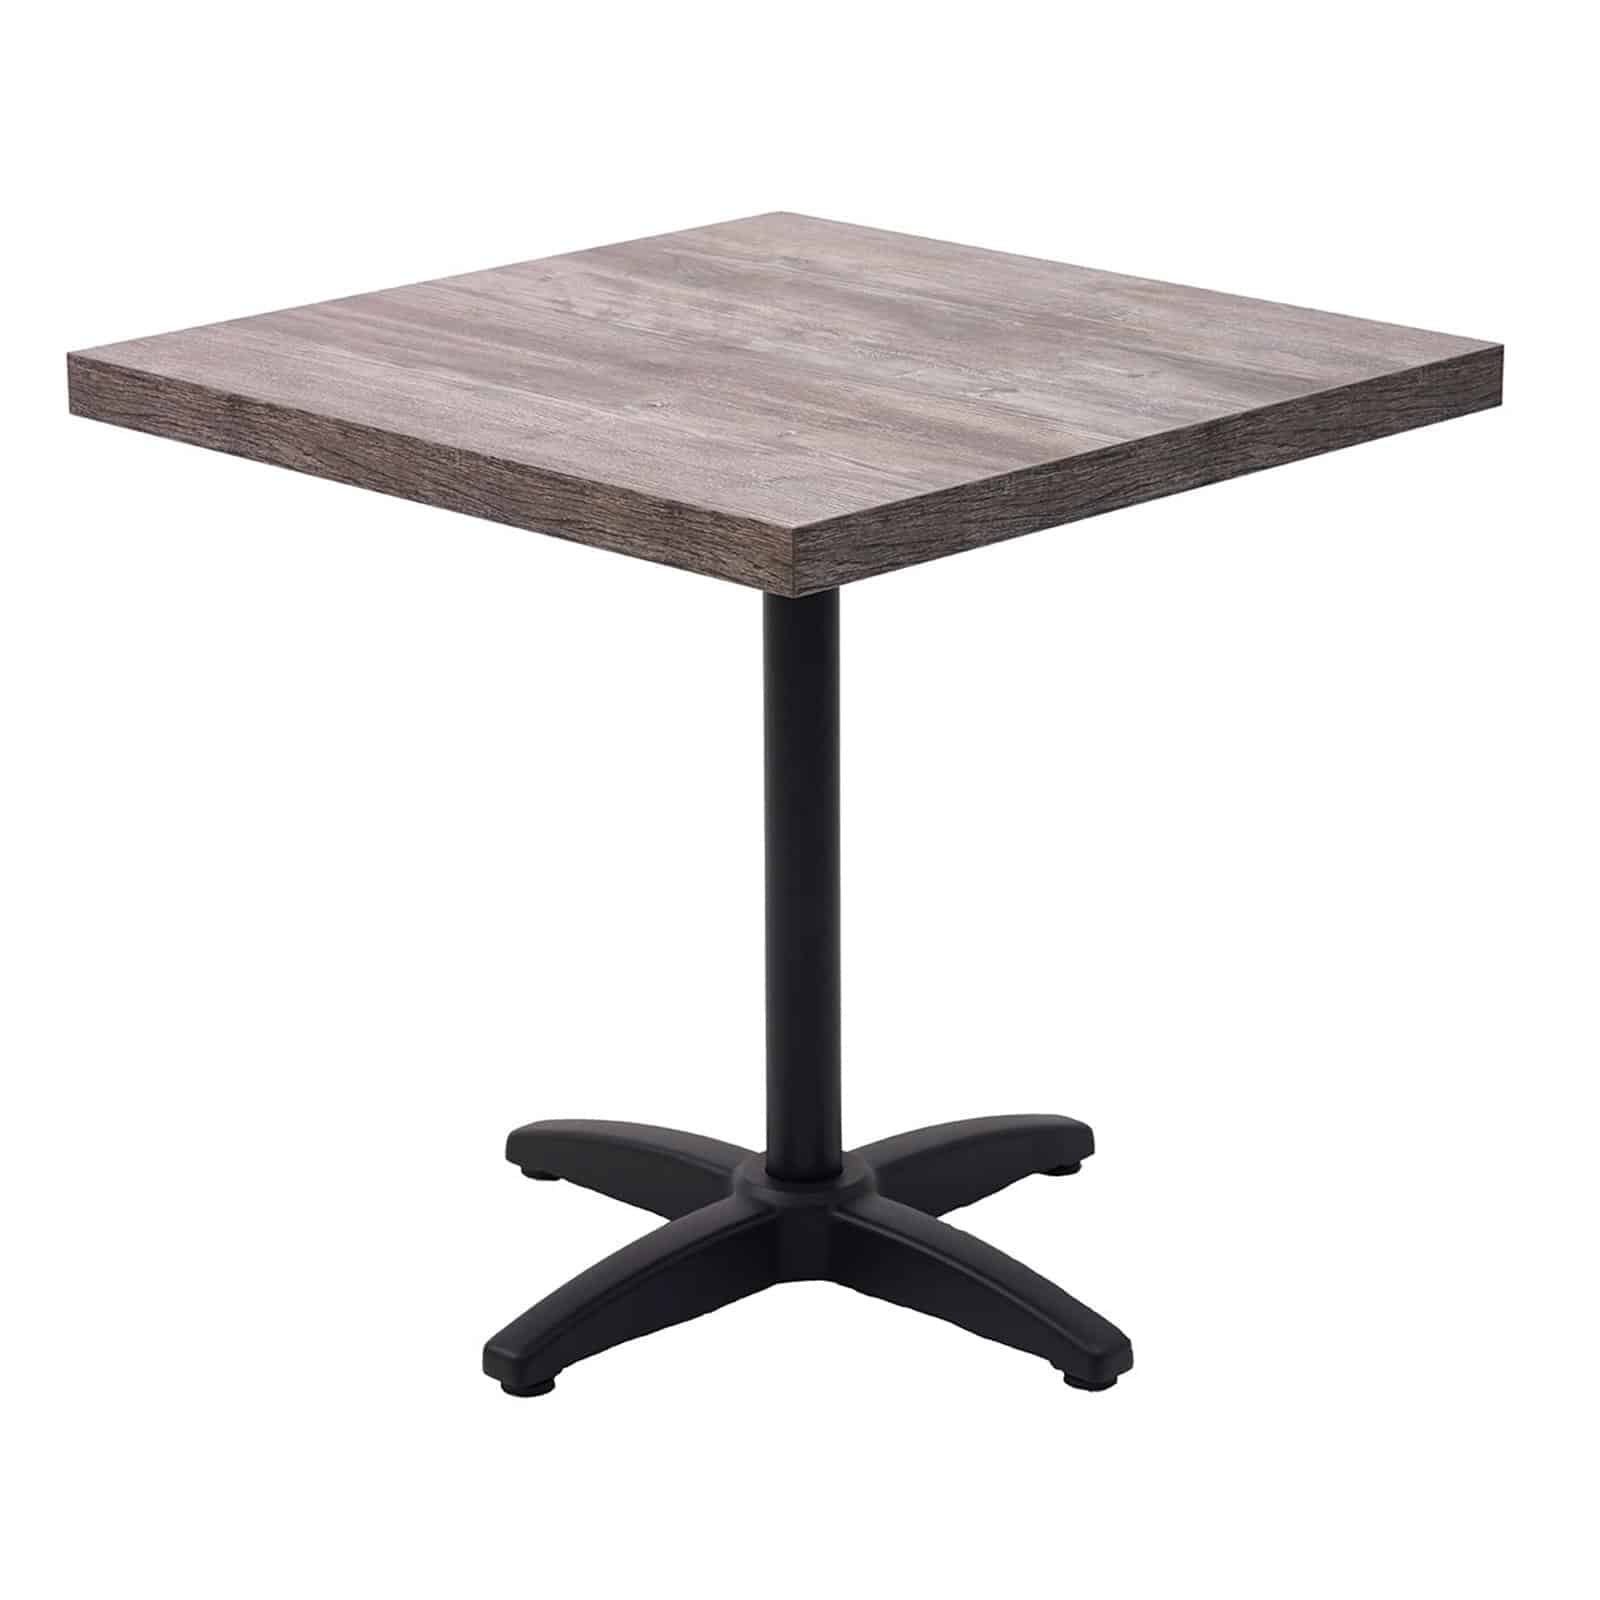 Florida Seating MARCO 24X30 Marco Table Top | CKitchen.com